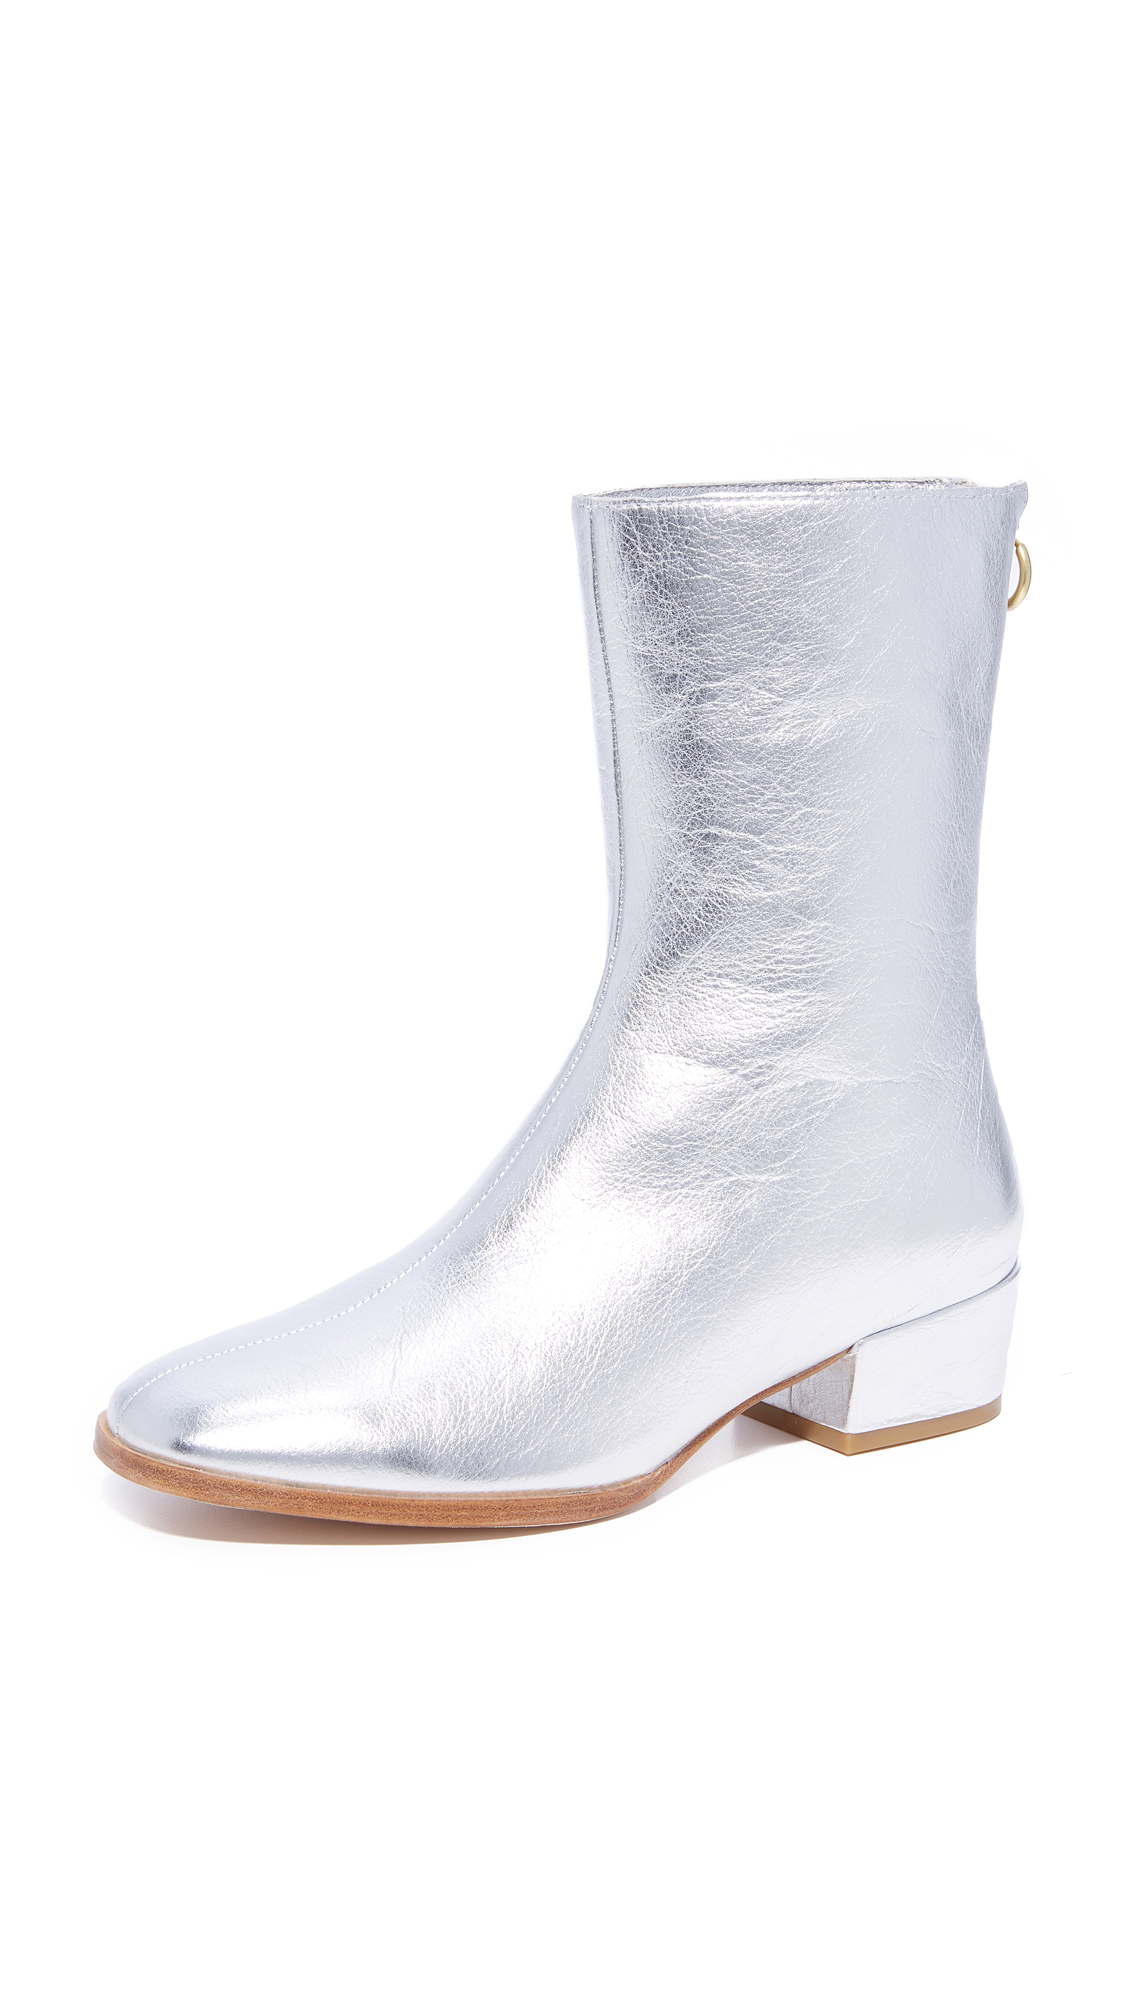 Joie Rabie Boots - Silver